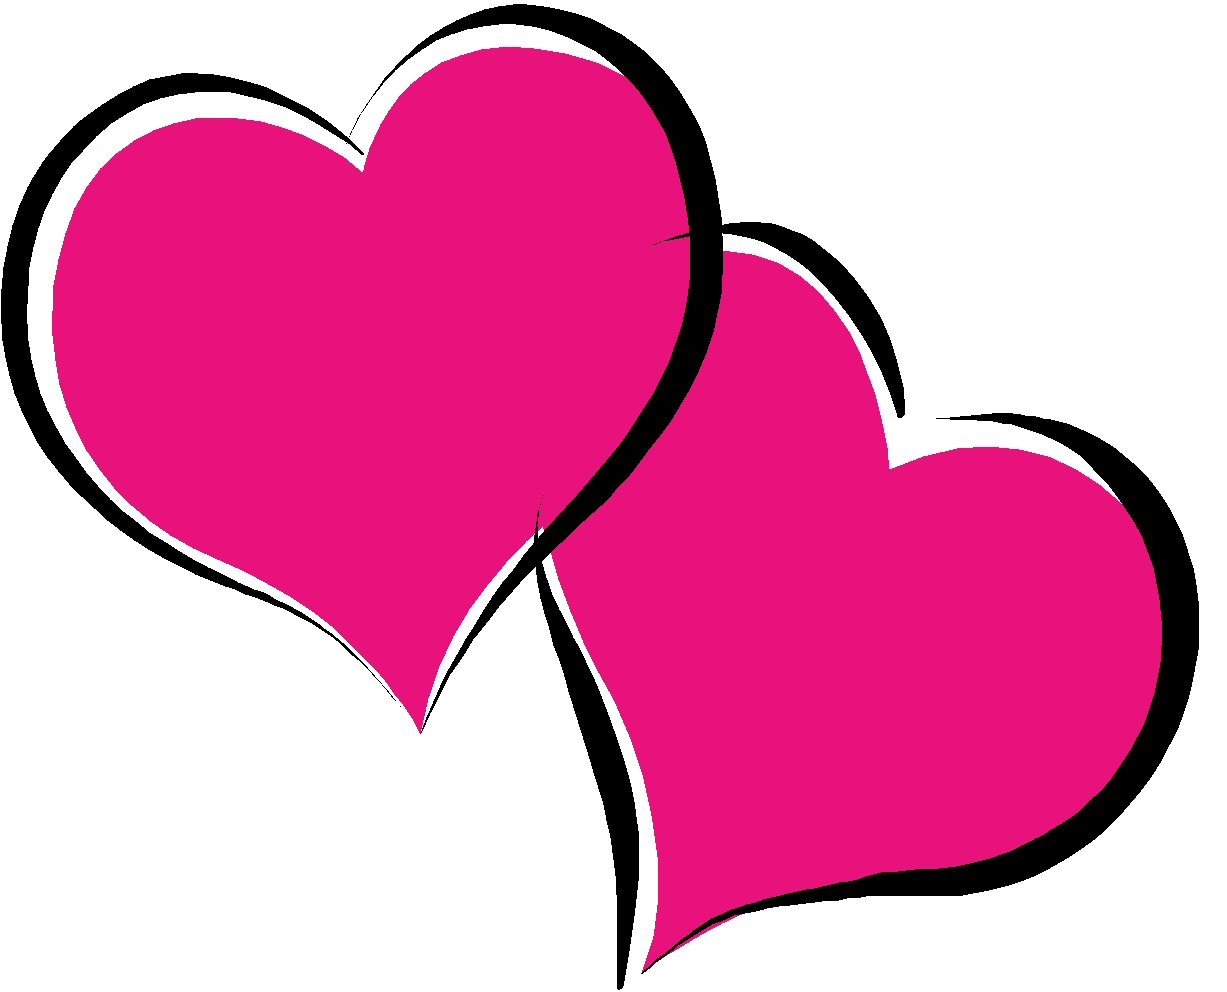 Pink Love Heart Clipart - ClipartFest-Pink love heart clipart - ClipartFest-15